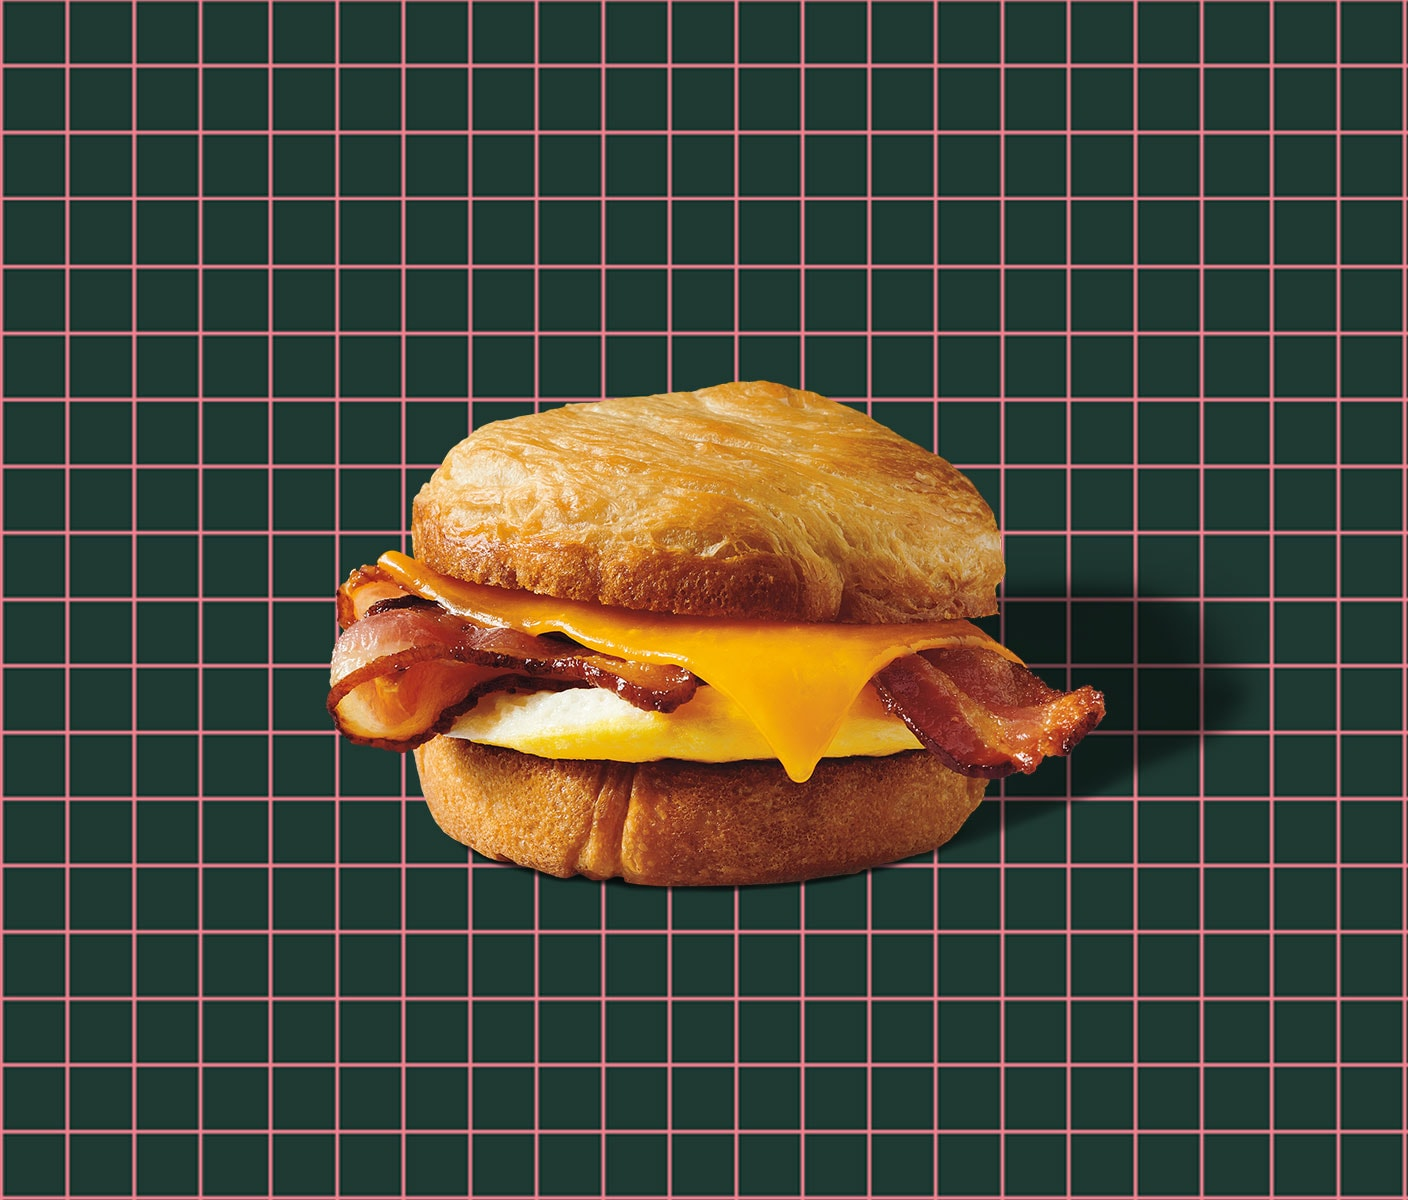 A breakfast sandwich sits atop a grid background.